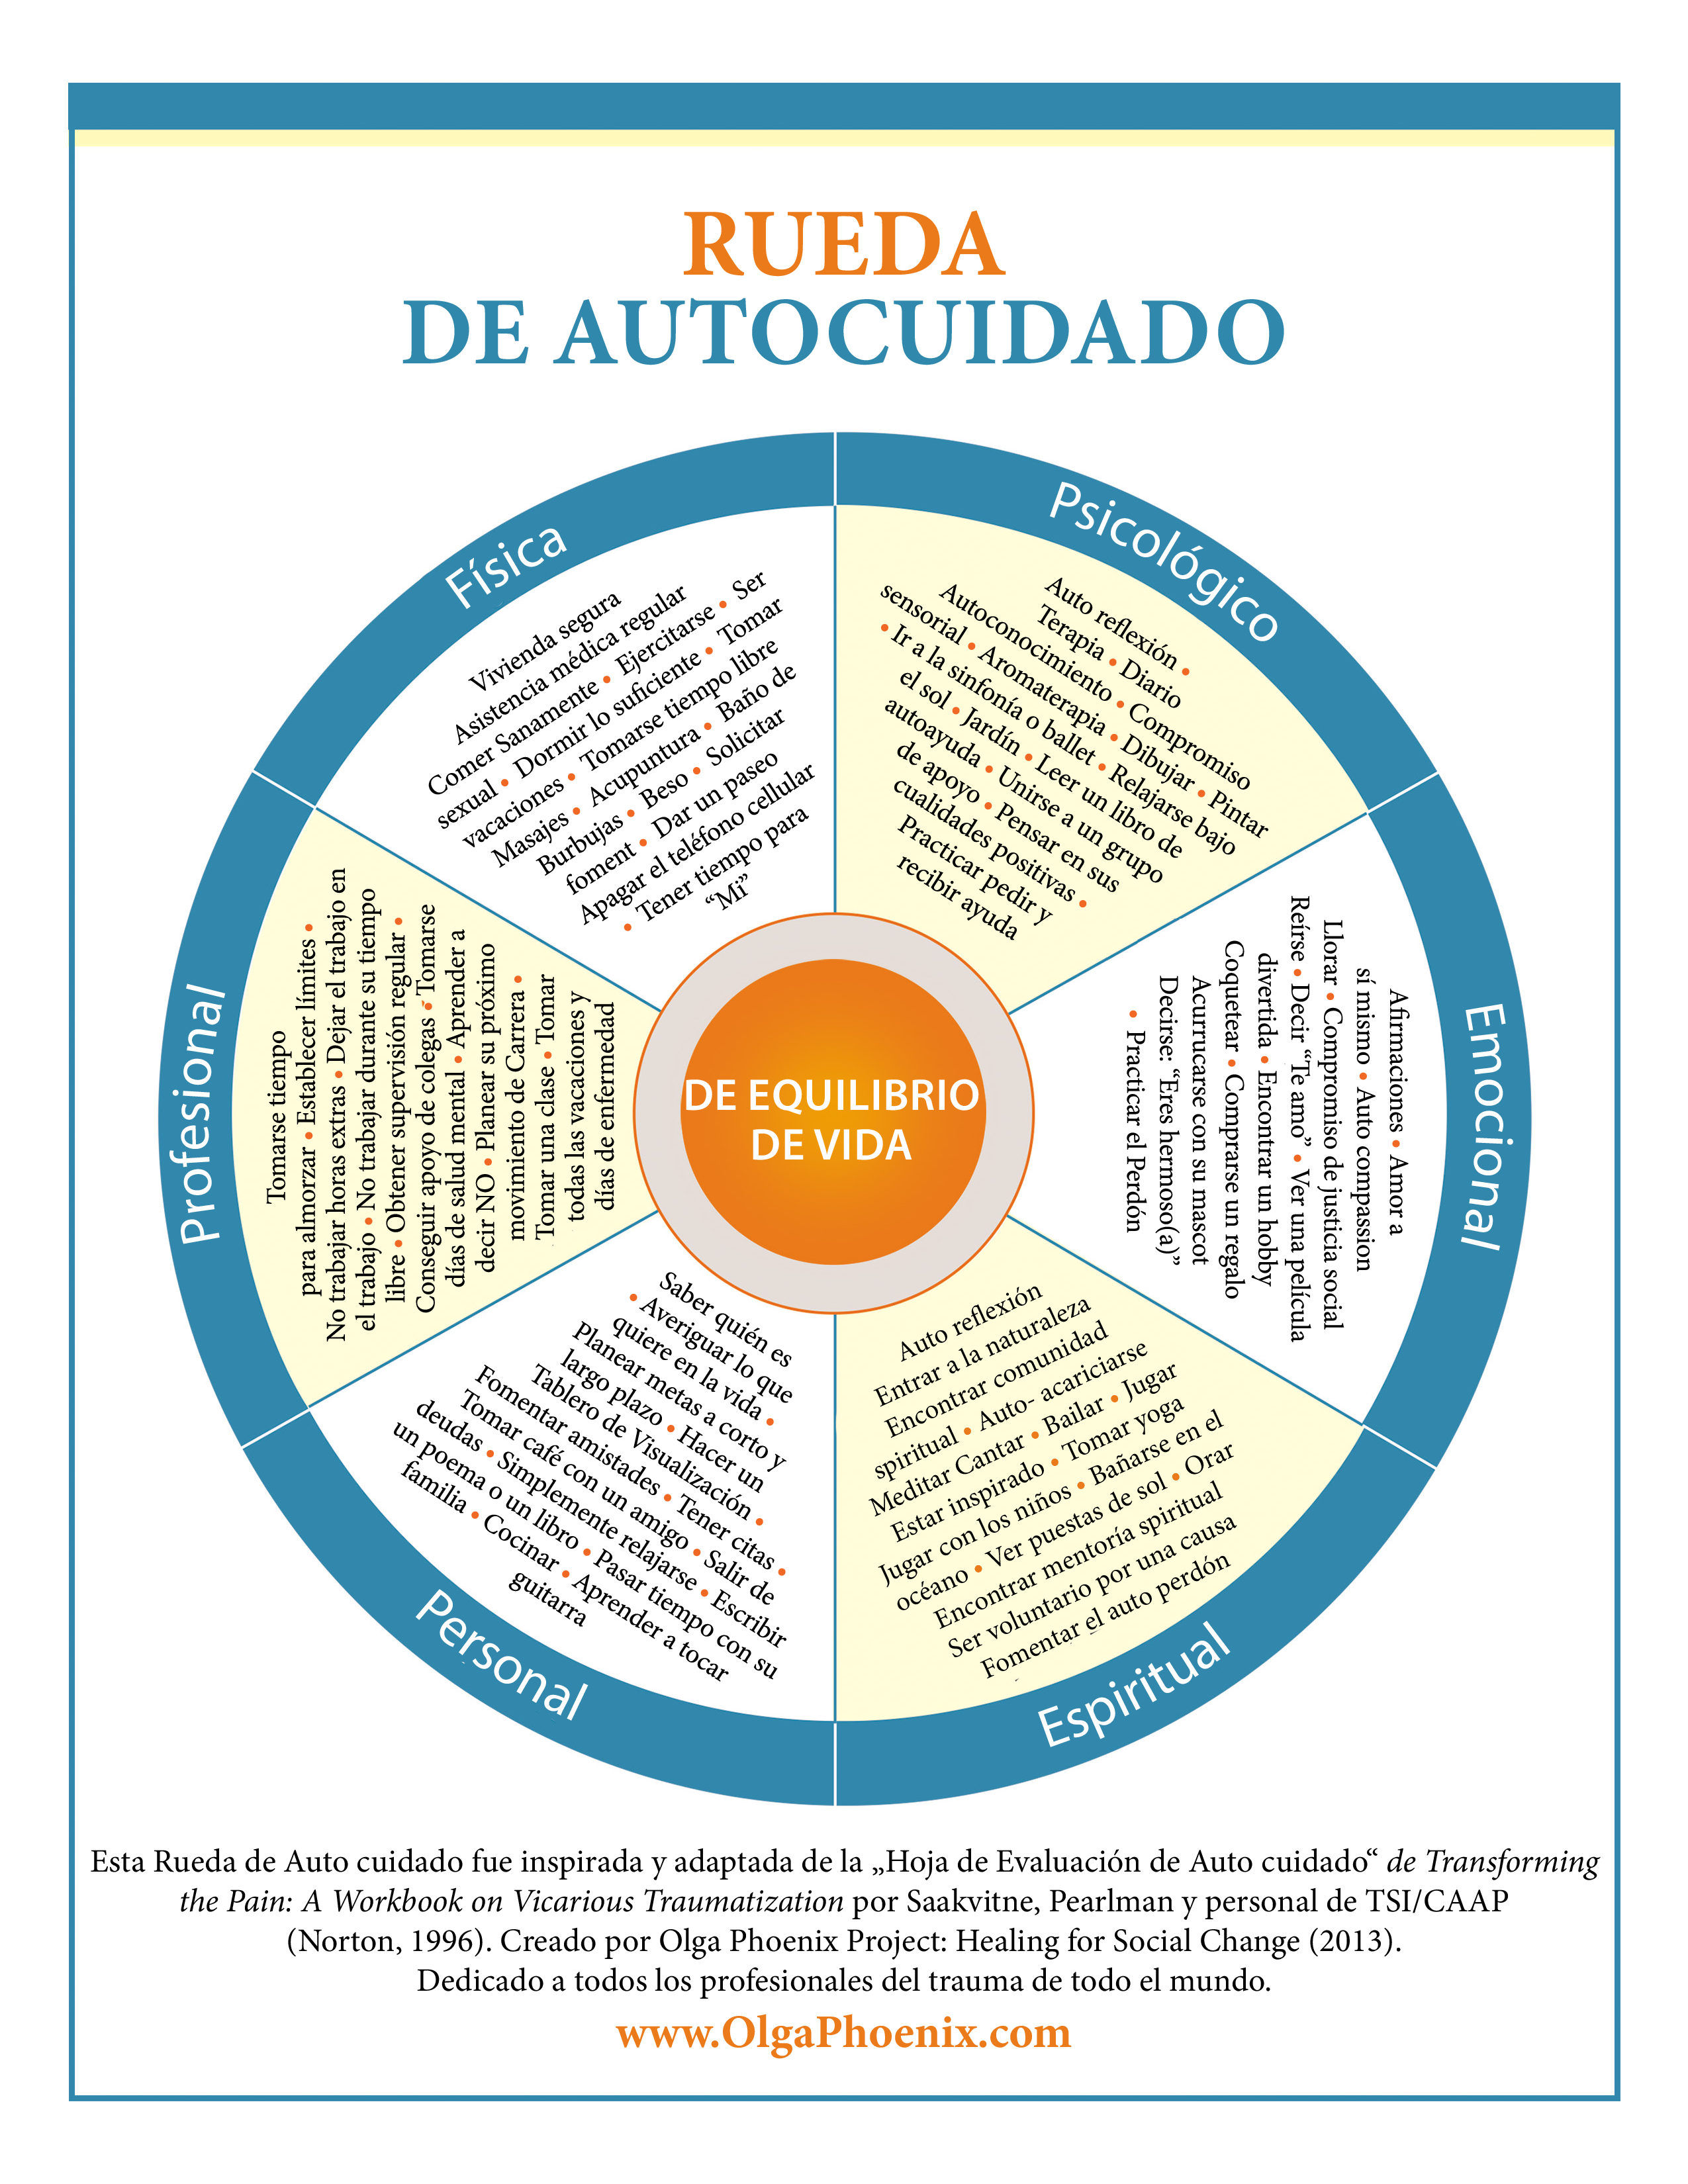 Spanish Self Care Wheel Olgaphoenix